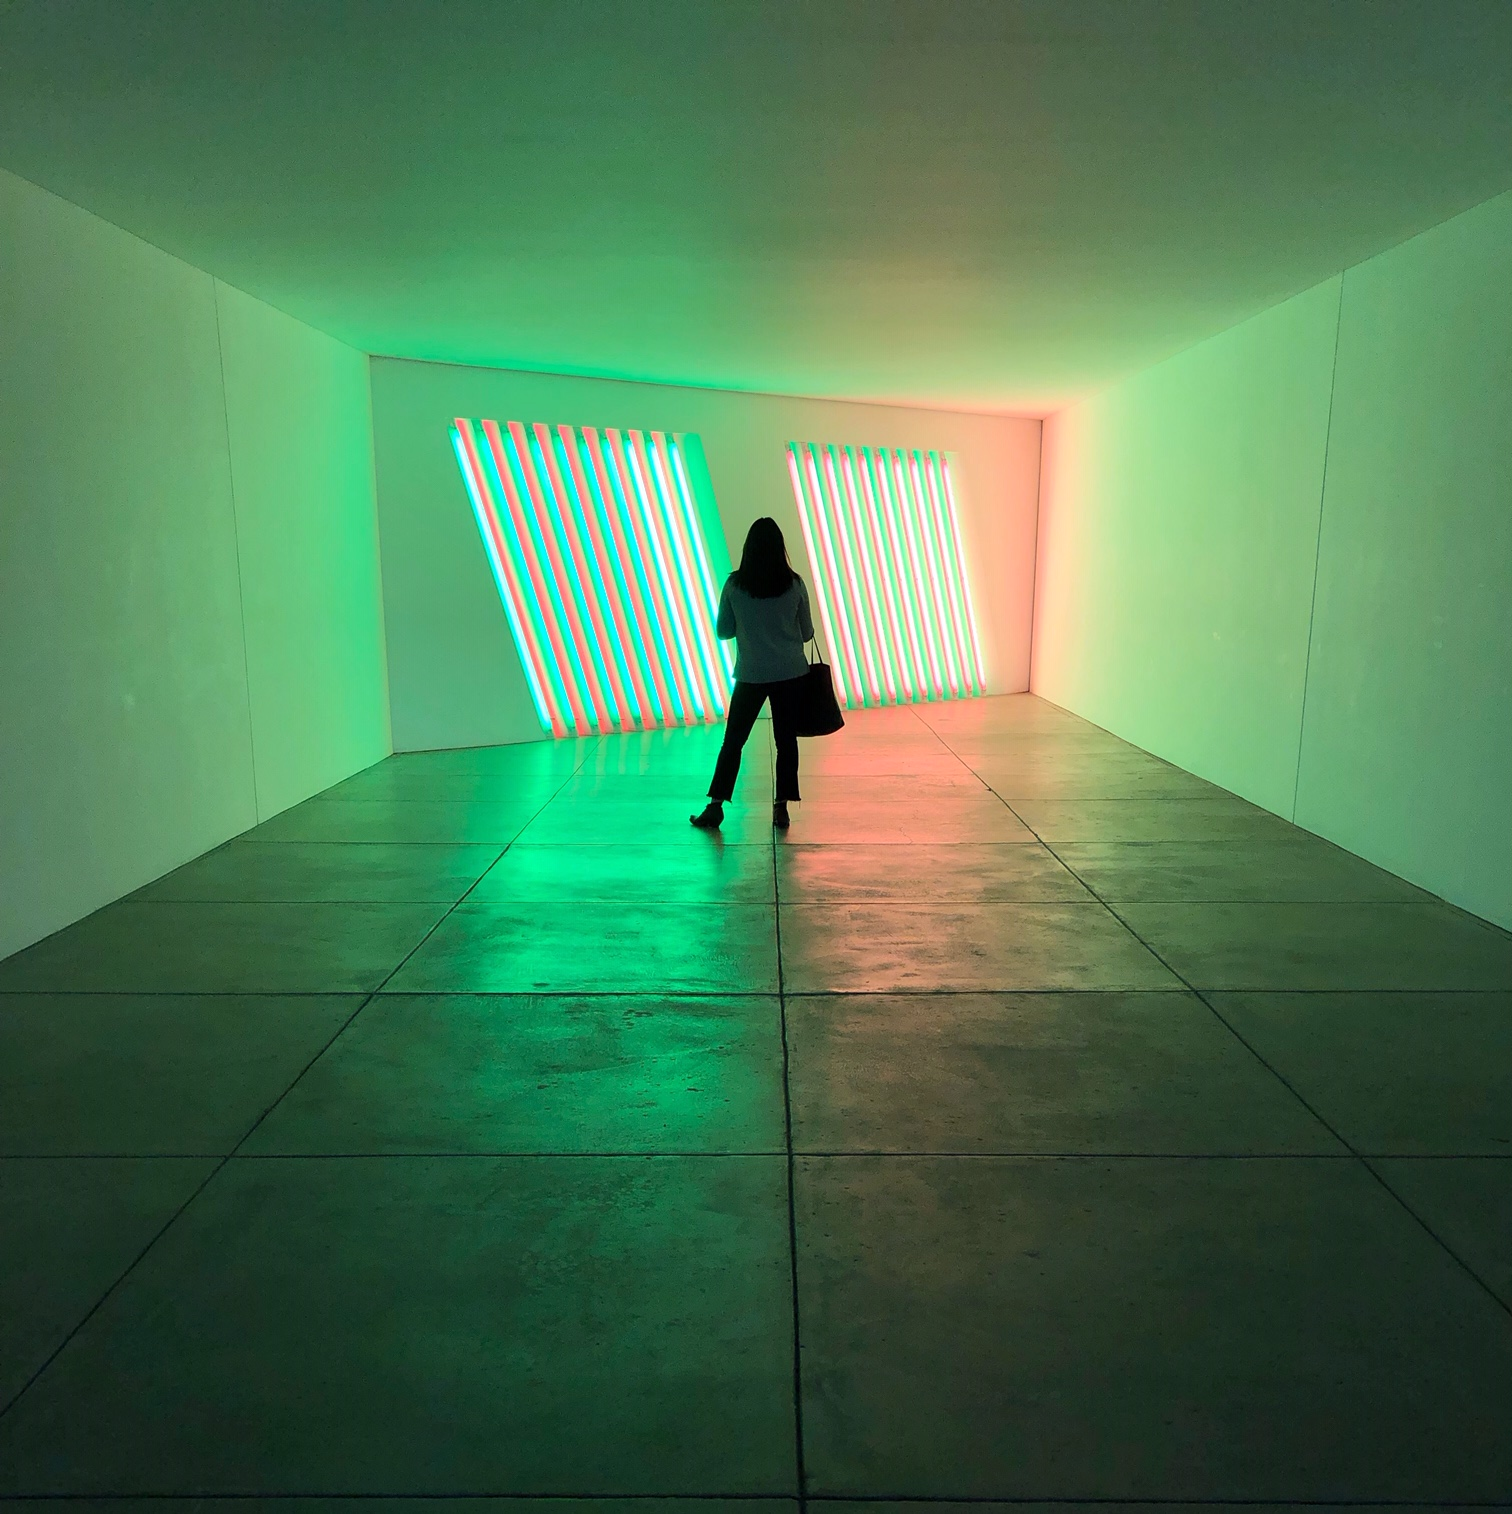 Dan Flavin's untitled (Marfa project), 1996, Chinati Foundation